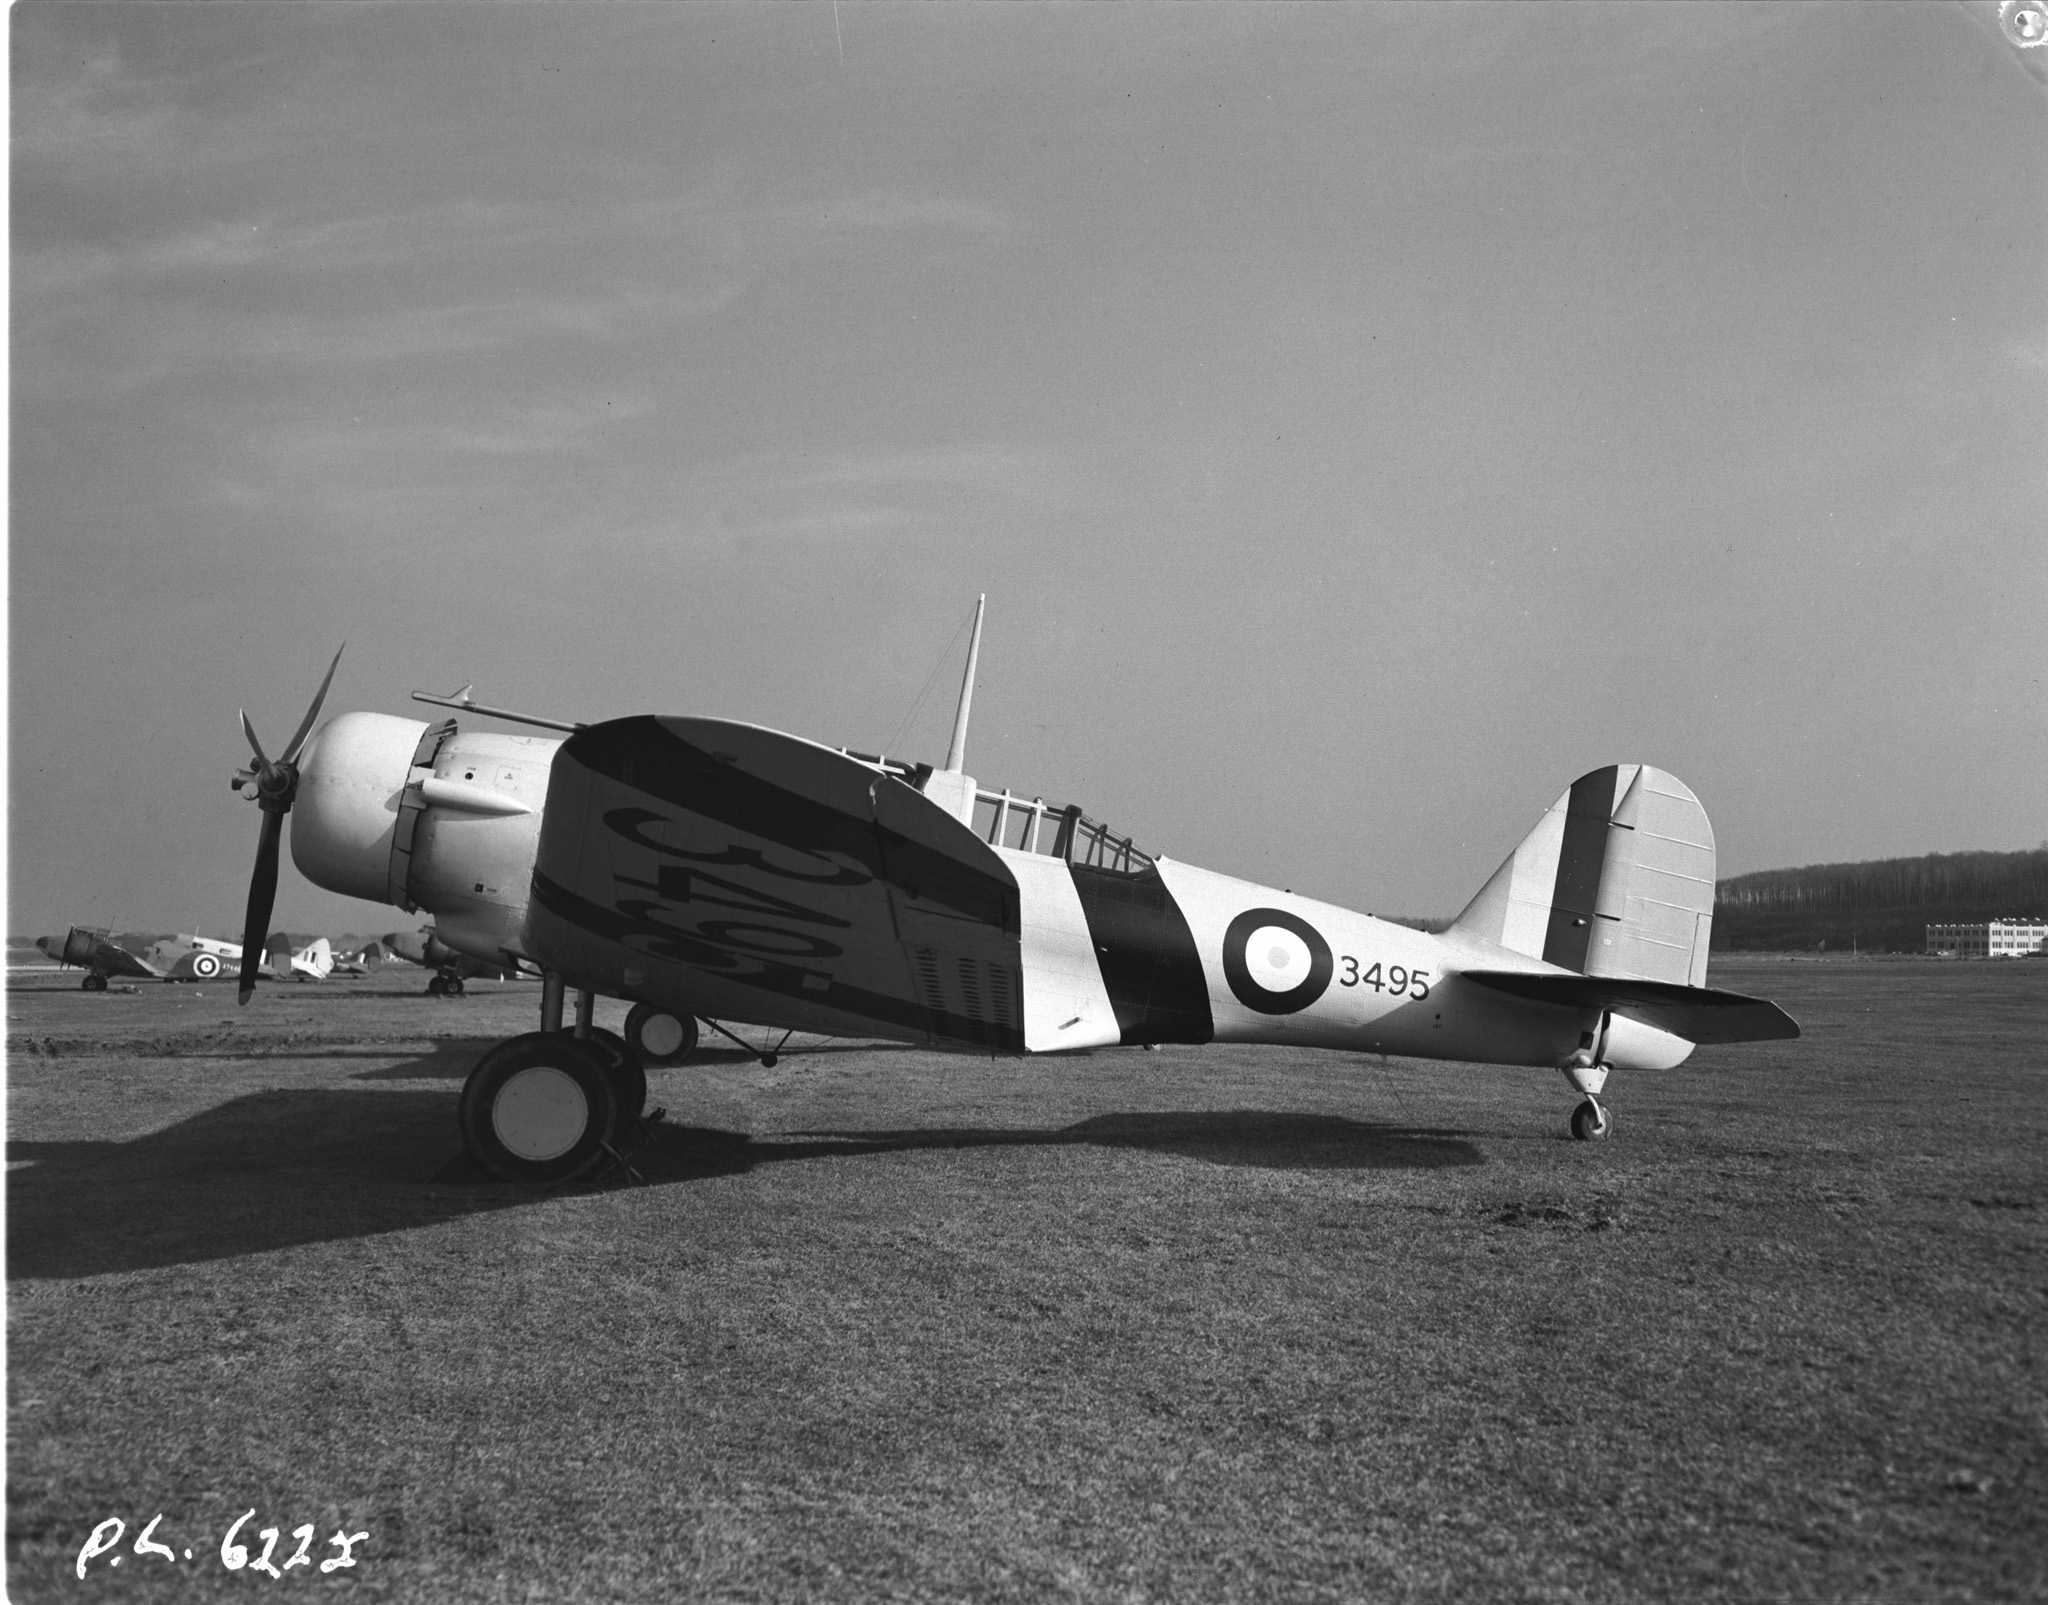 A wartime photo of an RCAF Northrop Nomad in Canada. (Canadian DND photo)